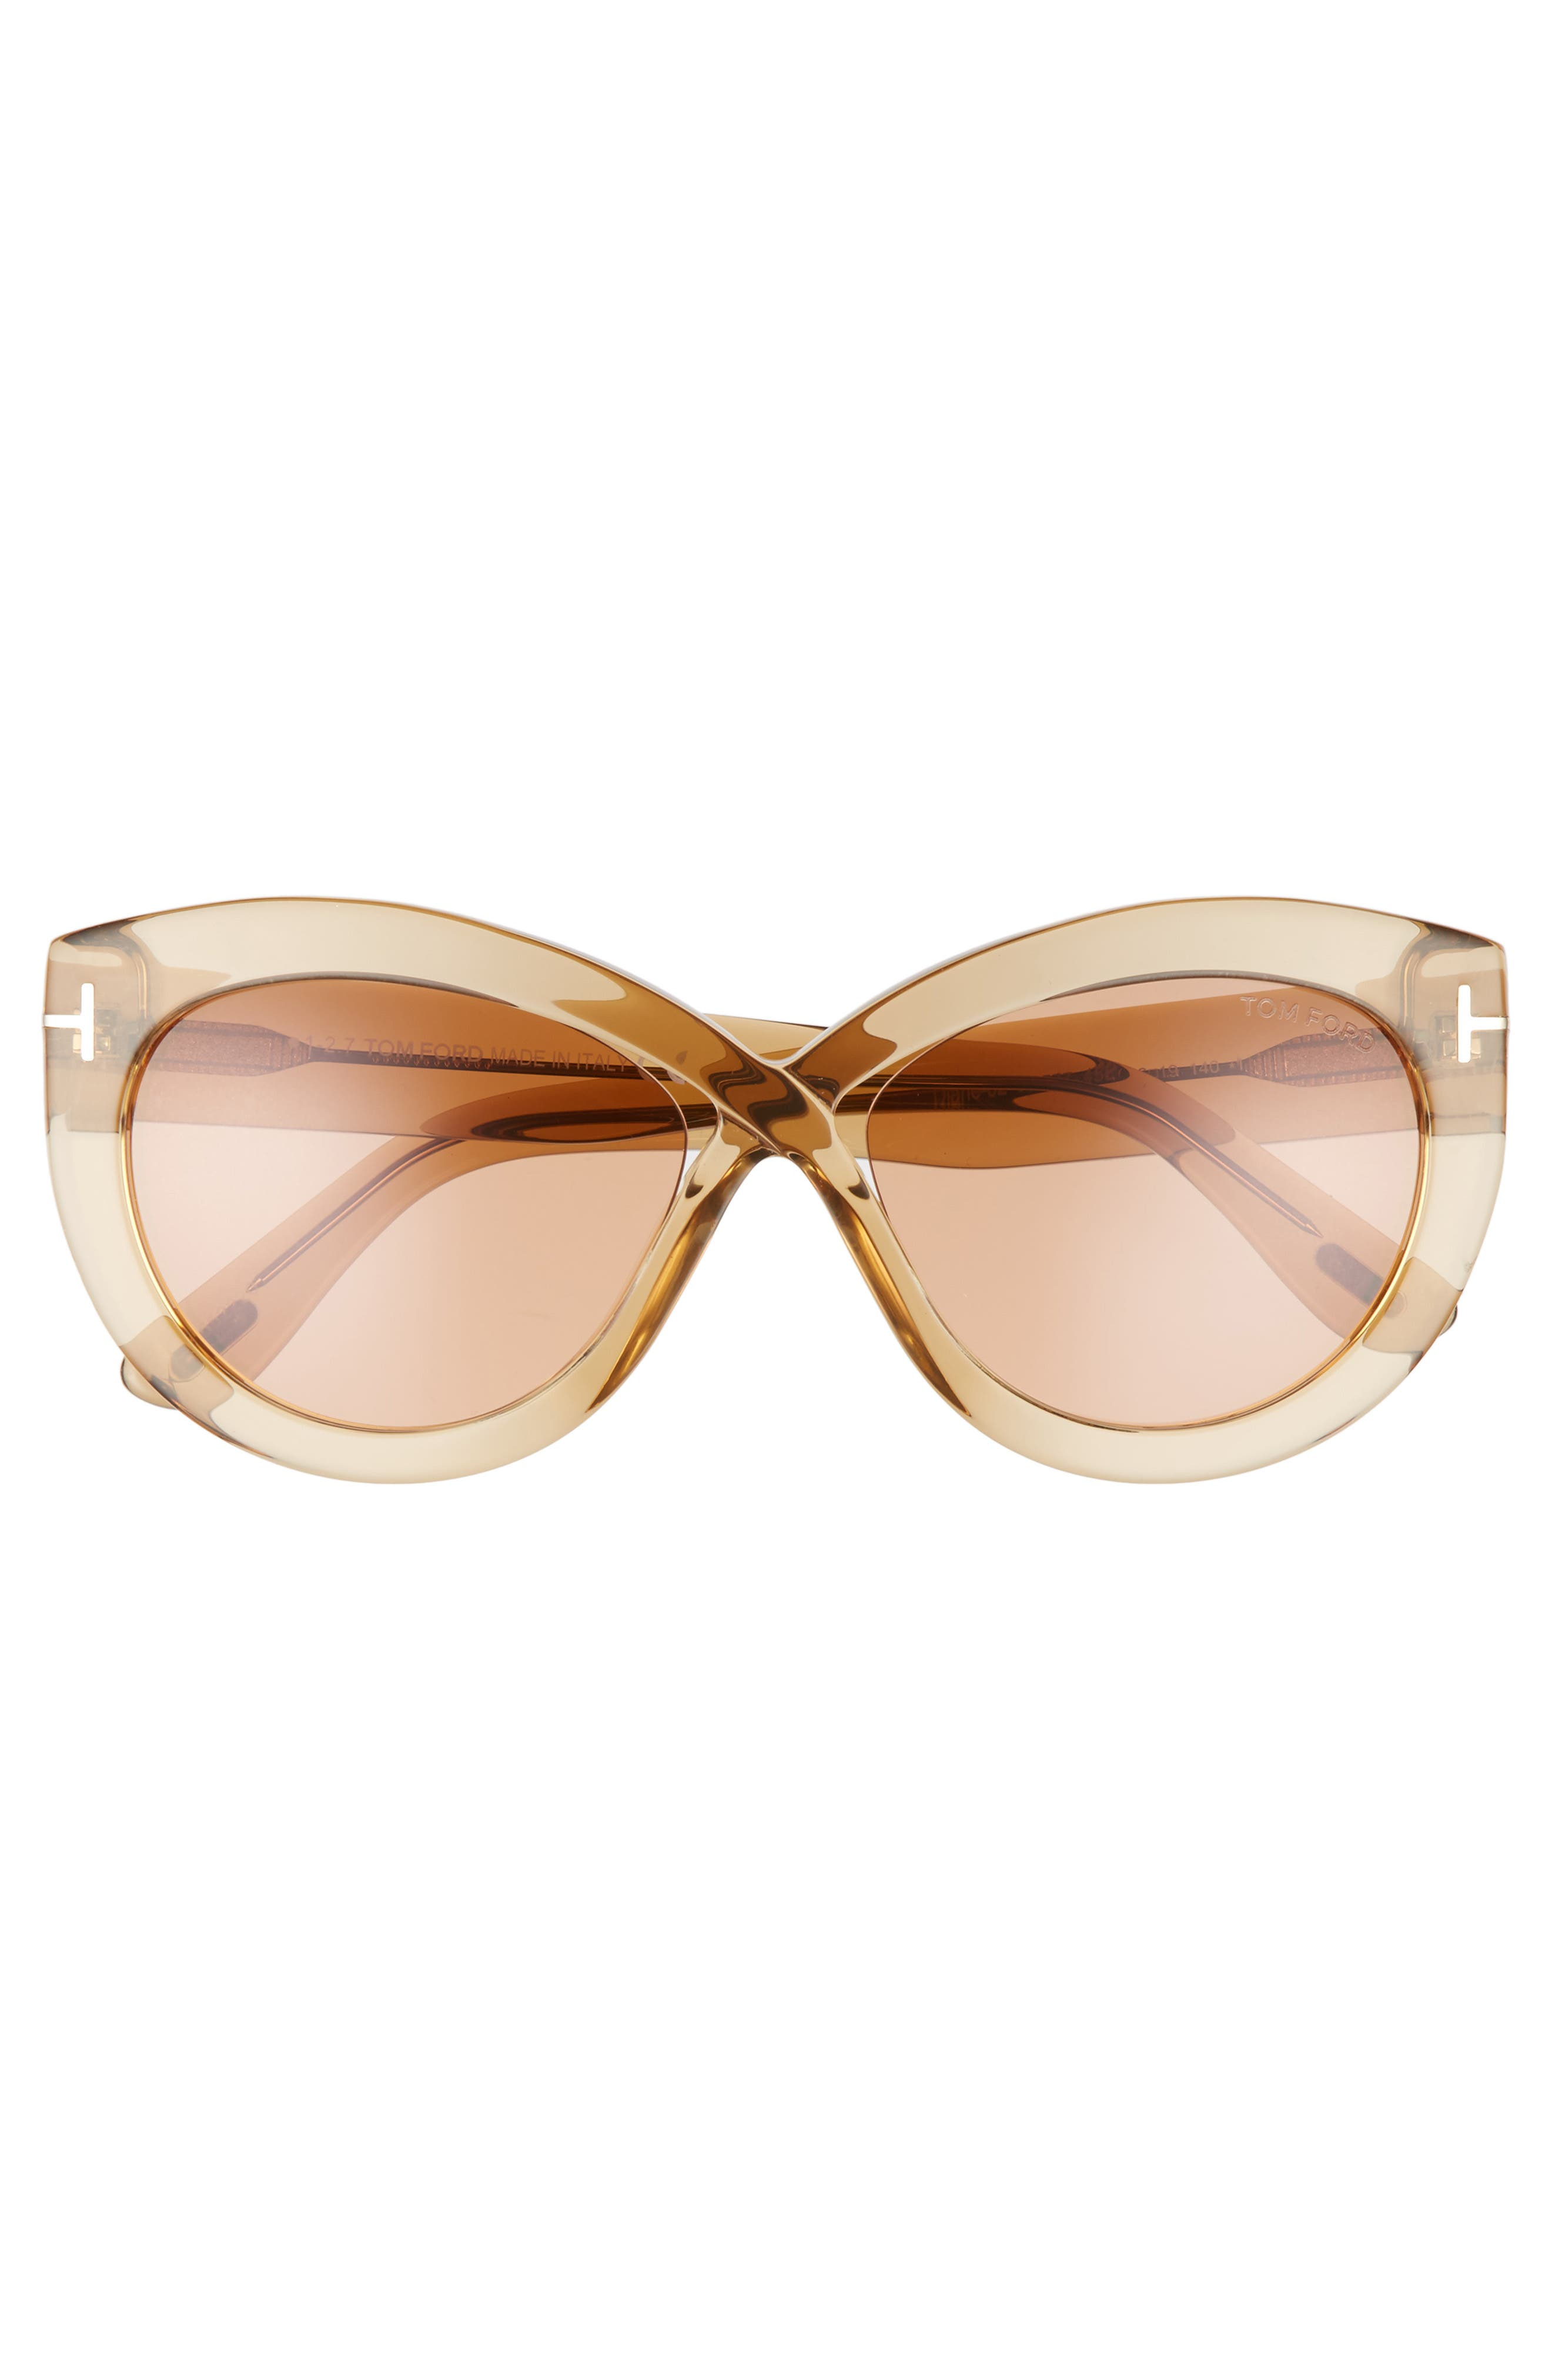 Alternate Image 3  - Tom Ford Diane 56mm Butterfly Sunglasses